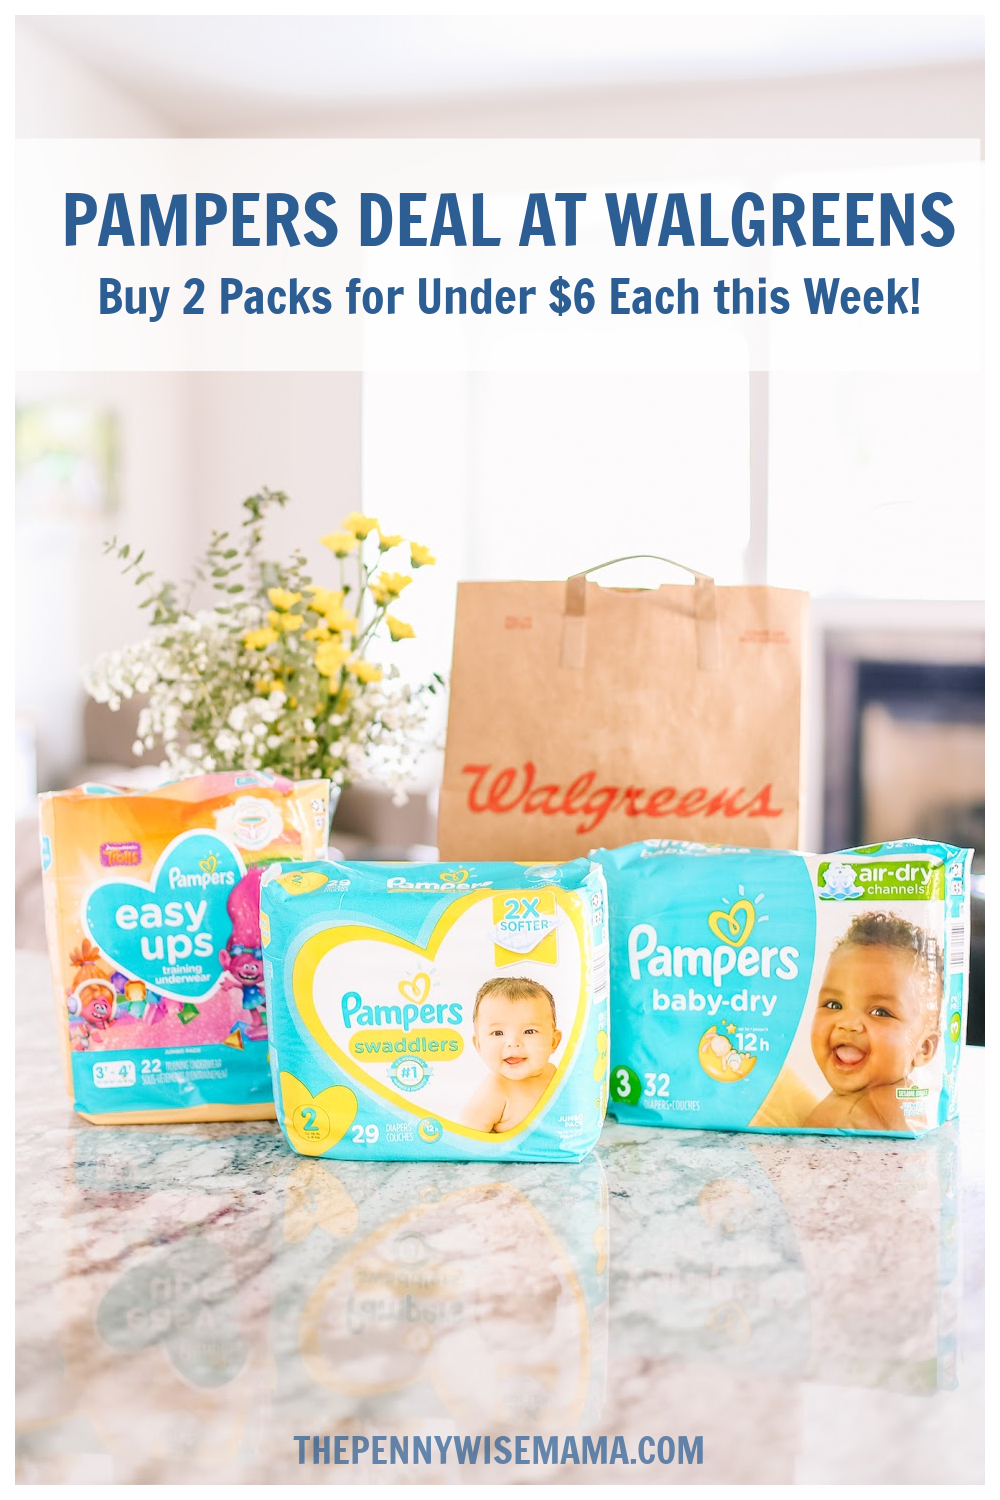 Now is a great time to stock up on diapers at @Walgreens! Through 6/26, you can score Pampers products for as low as $5.50 each! I'm sharing all of the details on the blog.